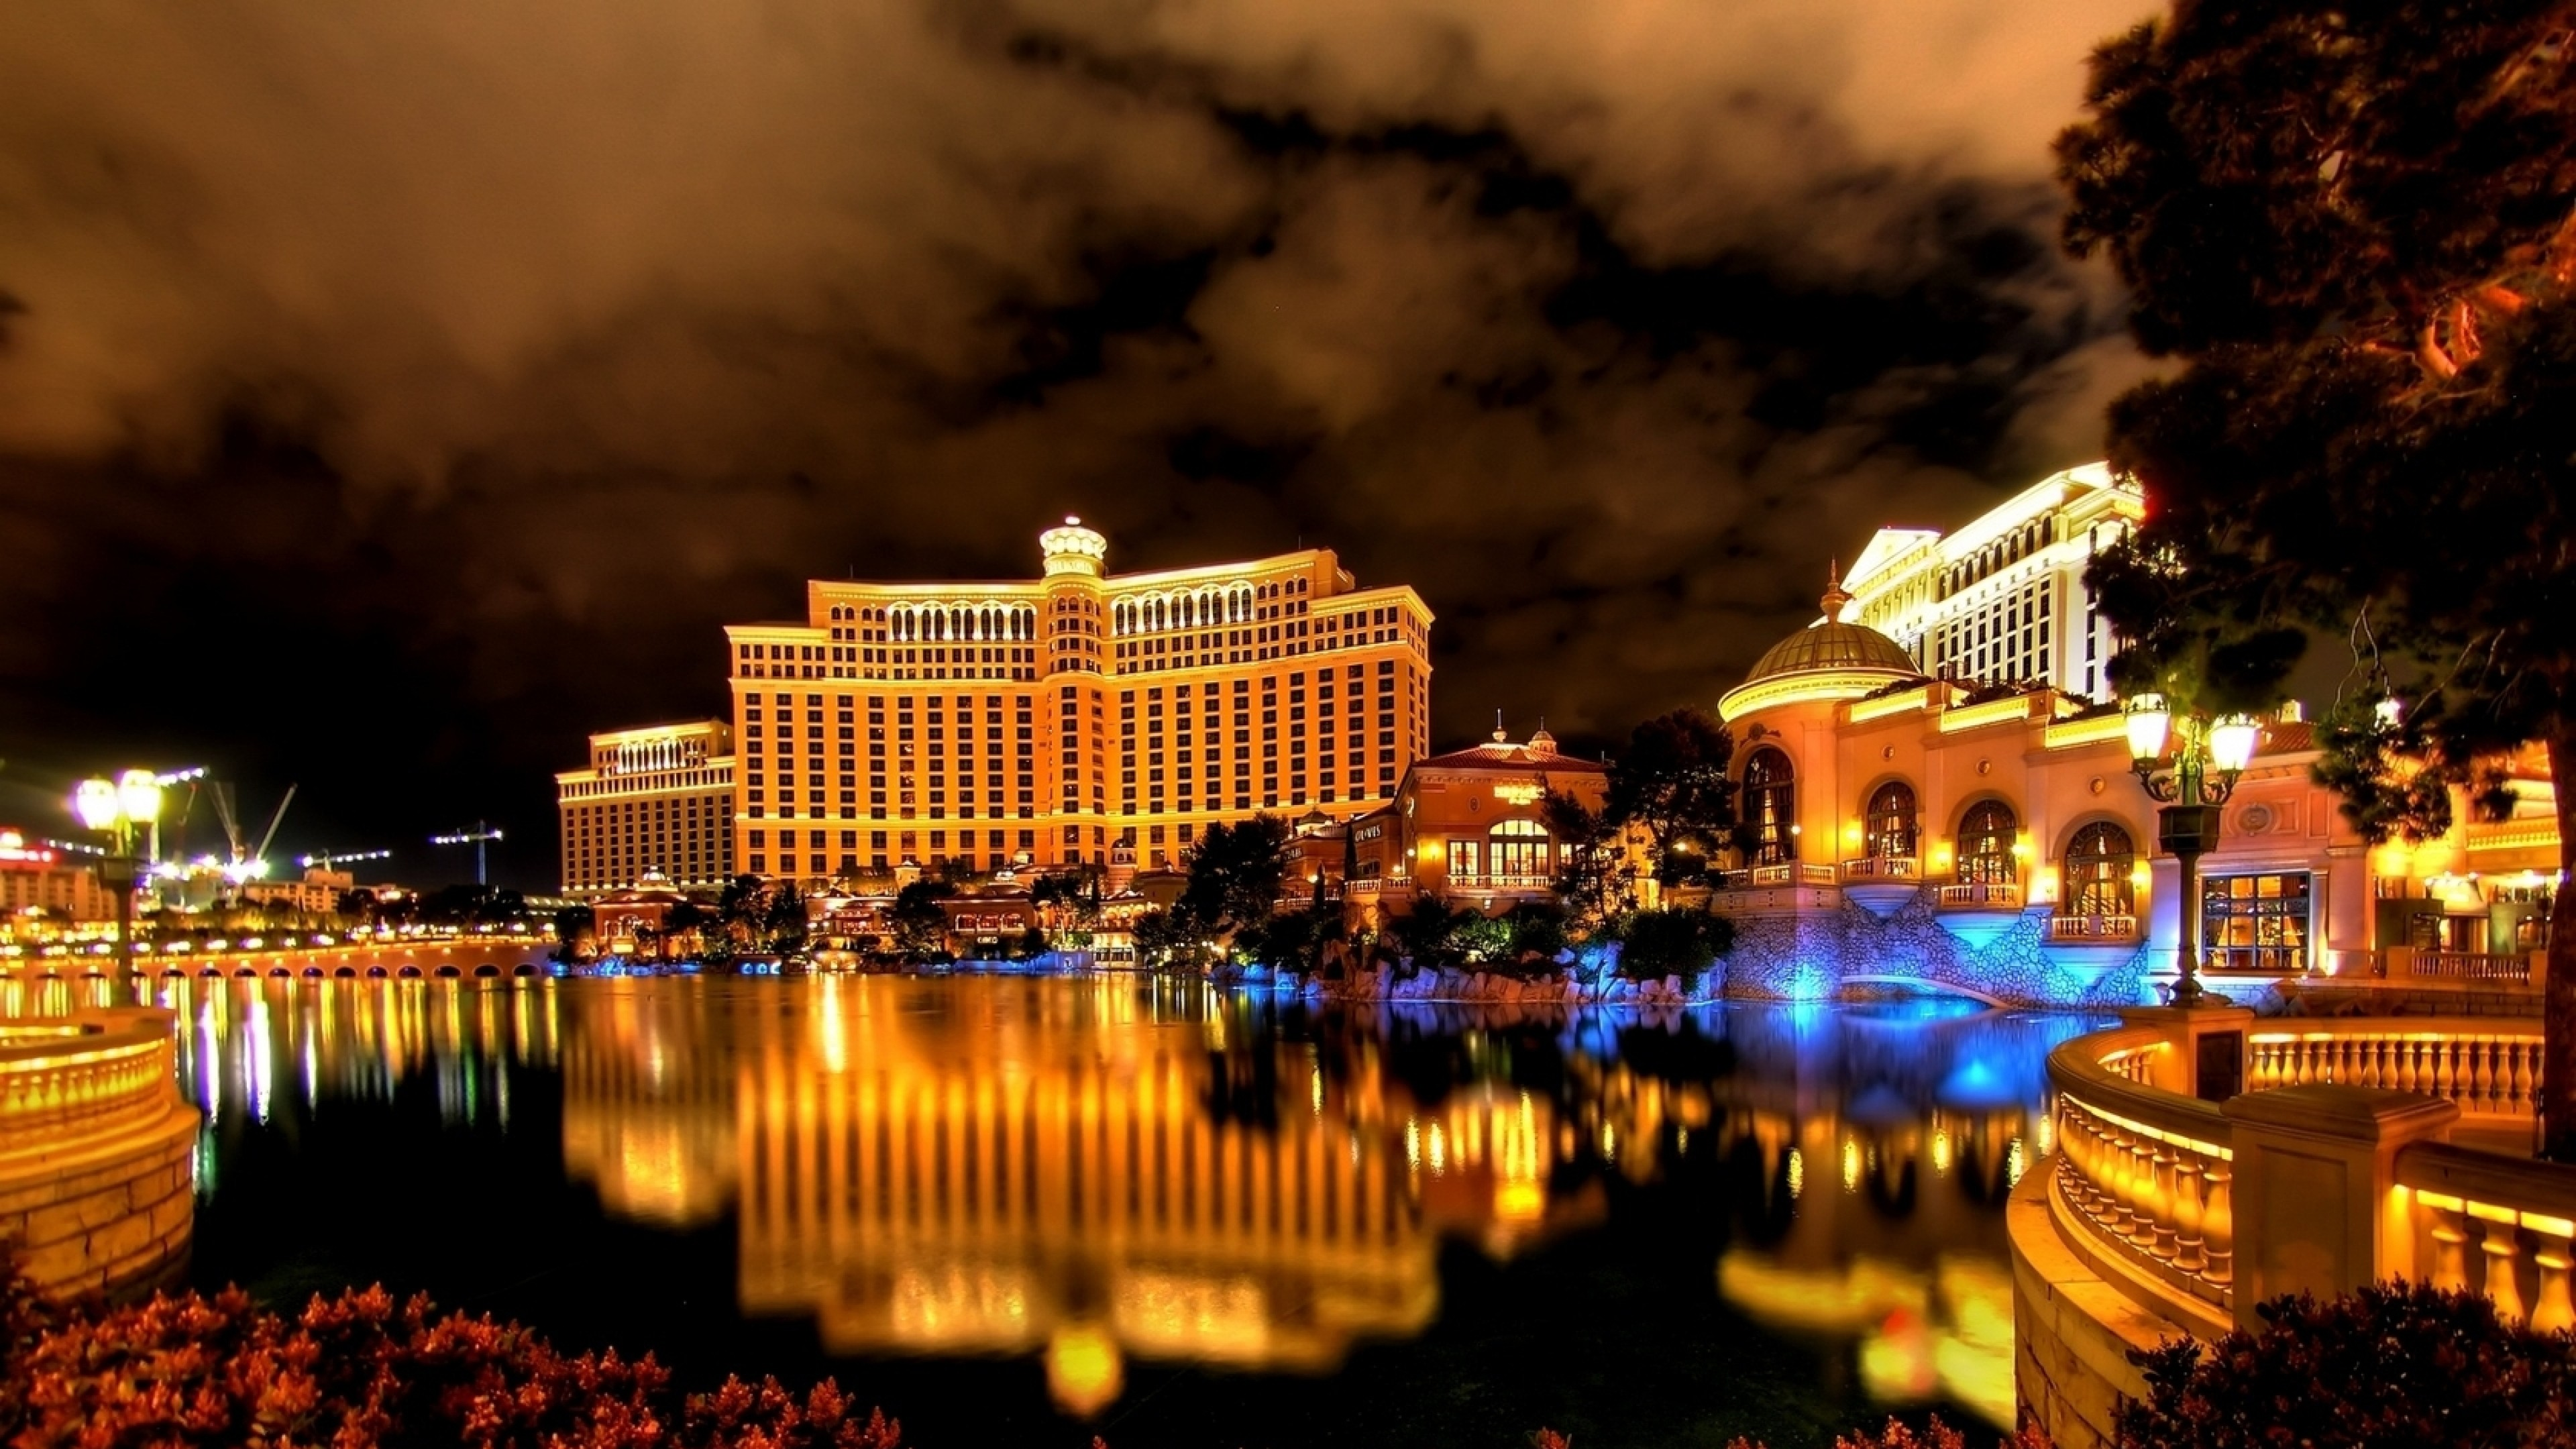 3840x2160 Preview wallpaper las vegas, night, hotel, building, reflection, fountain